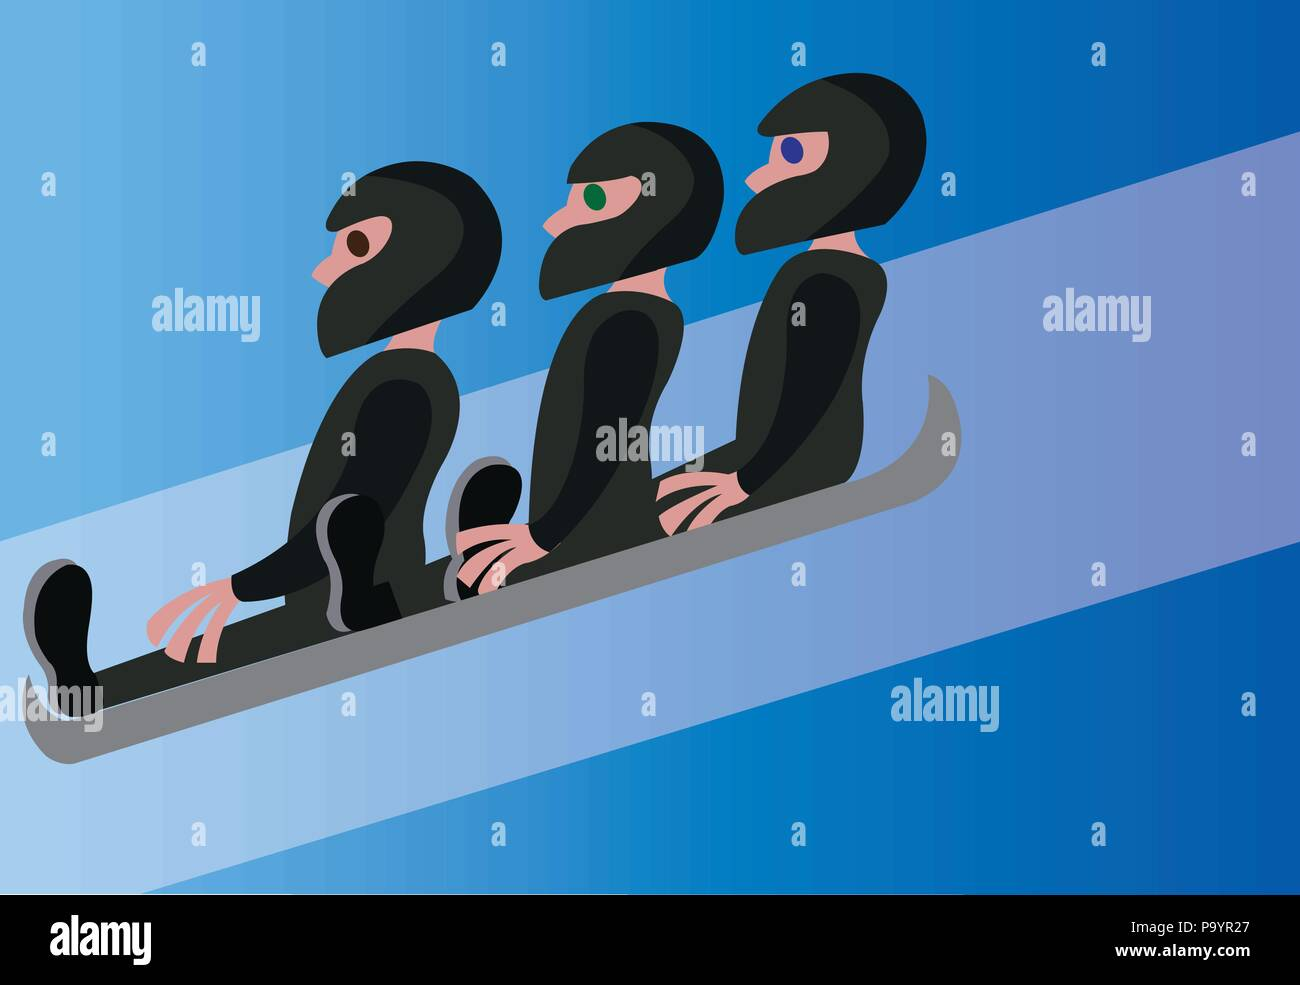 three wok racers slide down the ice - Stock Vector